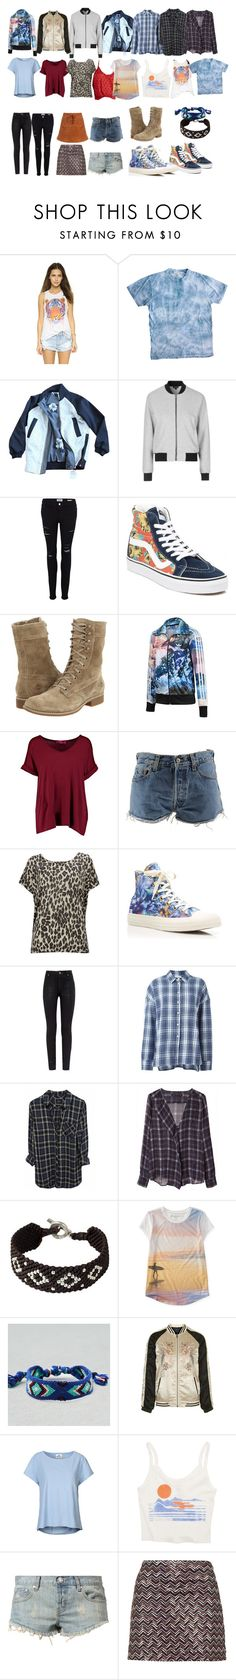 """""""Alicia Clark season 1 essentials - ftwd / fear the walking dead"""" by shadyannon ❤ liked on Polyvore featuring Chaser, Sophomore, lululemon, Topshop, Frame, Vans, Timberland, Boohoo, Levi's and Wallis"""